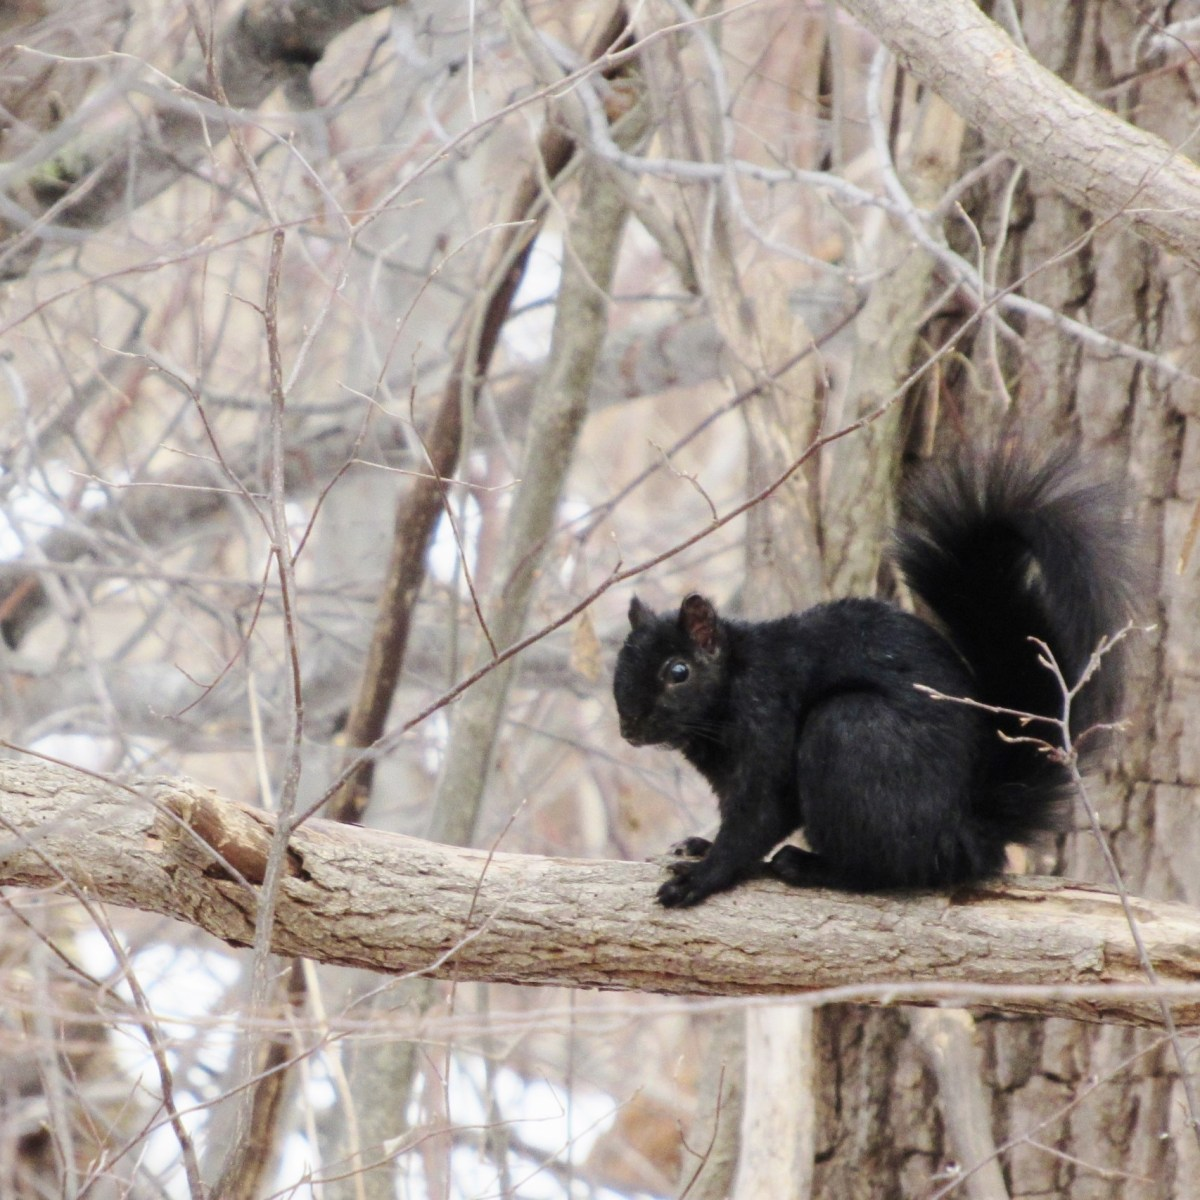 A black-colored gray squirrel sits on a branch in the winter